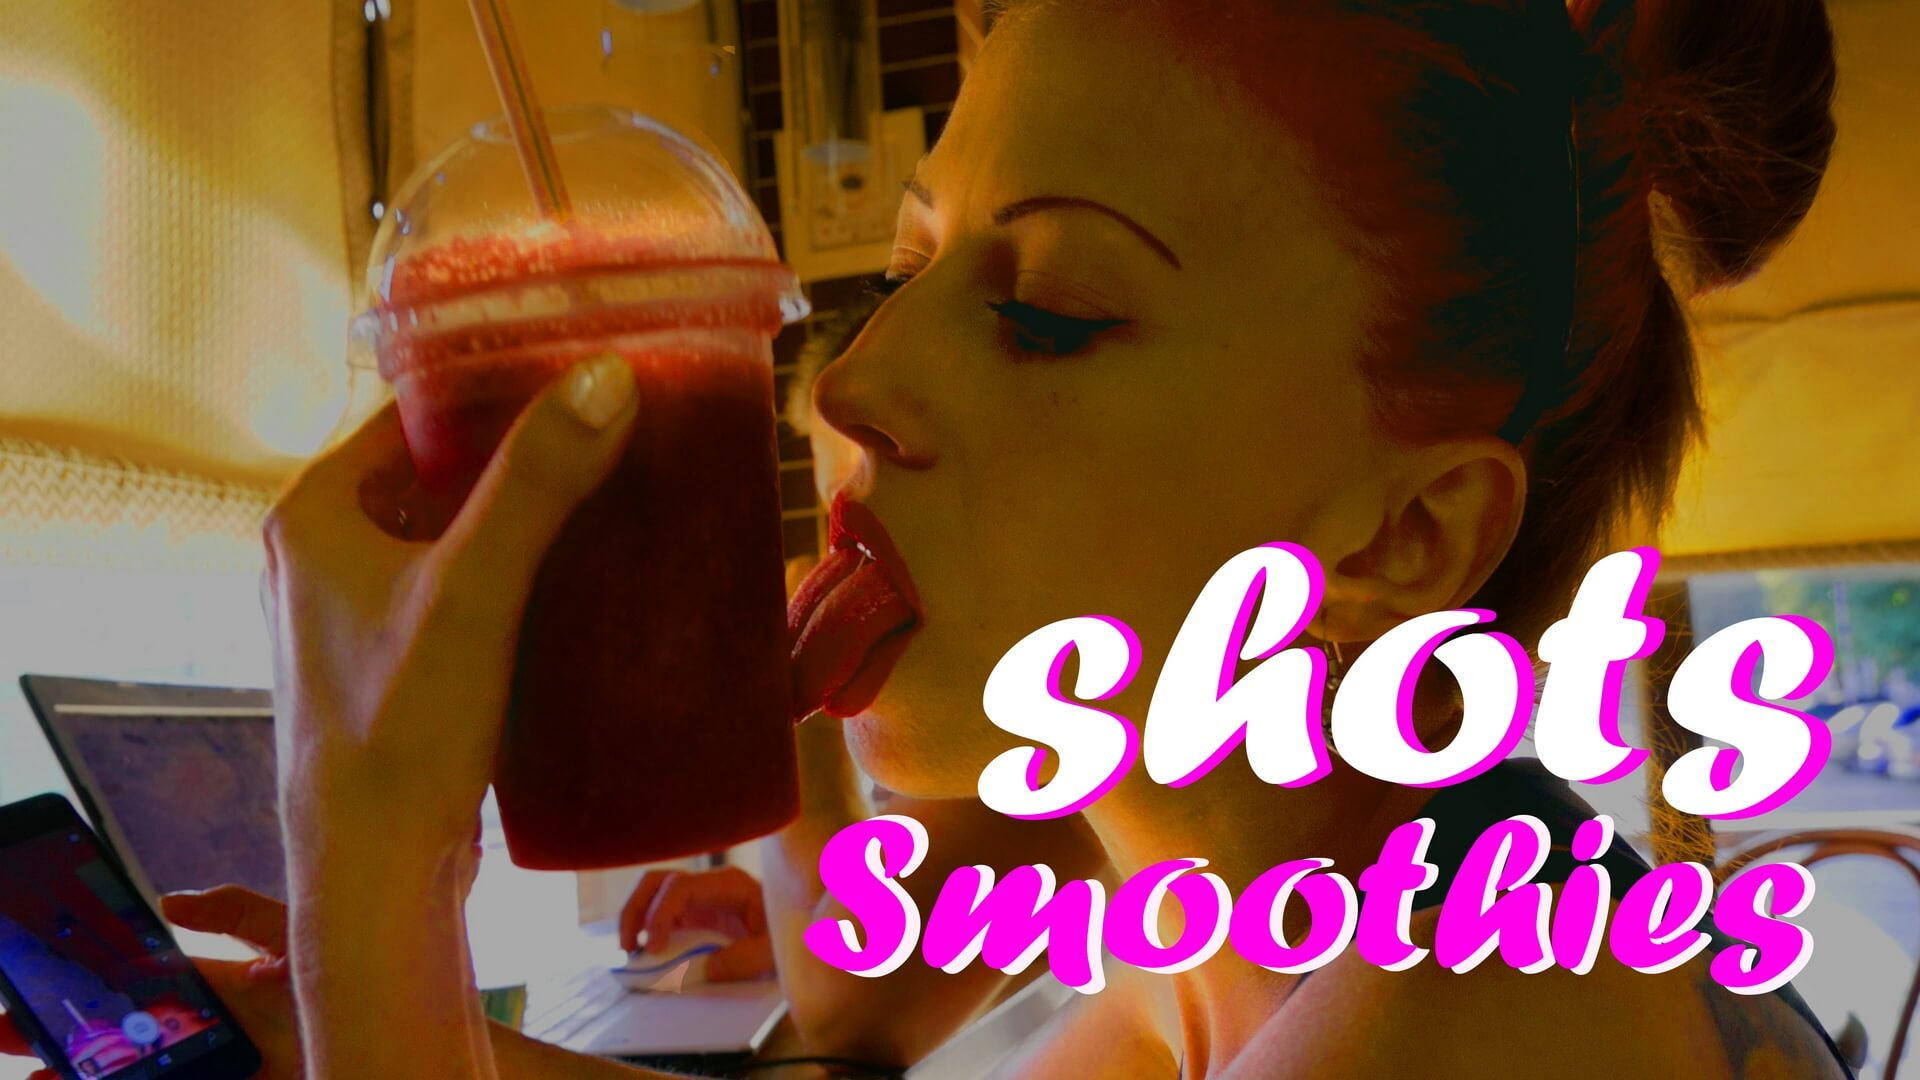 smoothie shot cafe talking web s - webseries, вебсериал